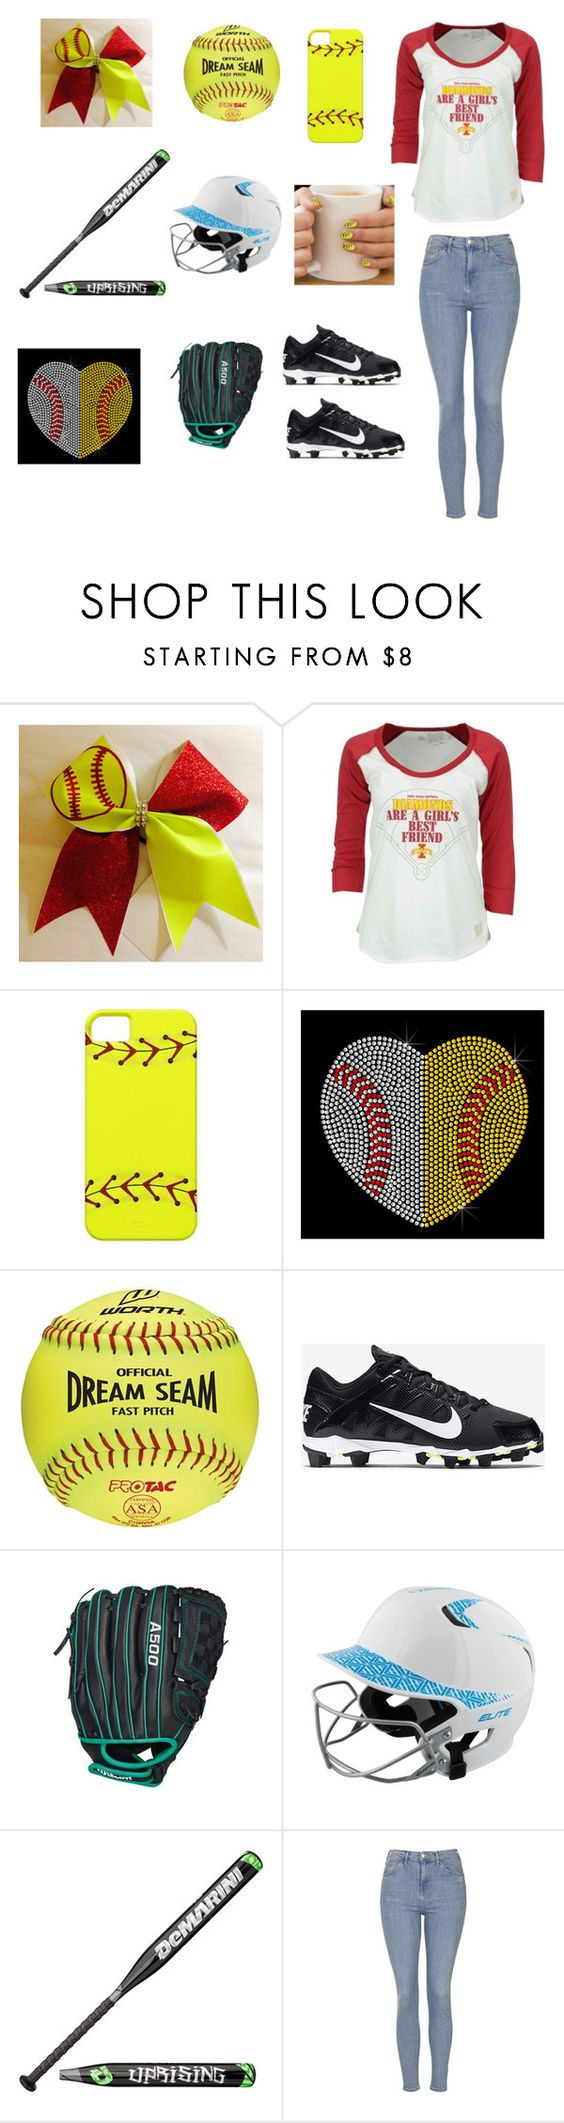 """""""Softball"""" by ashling22 on Polyvore featuring Retro Brand, Rawlings, NIKE, Wilson, EASTON and Topshop"""